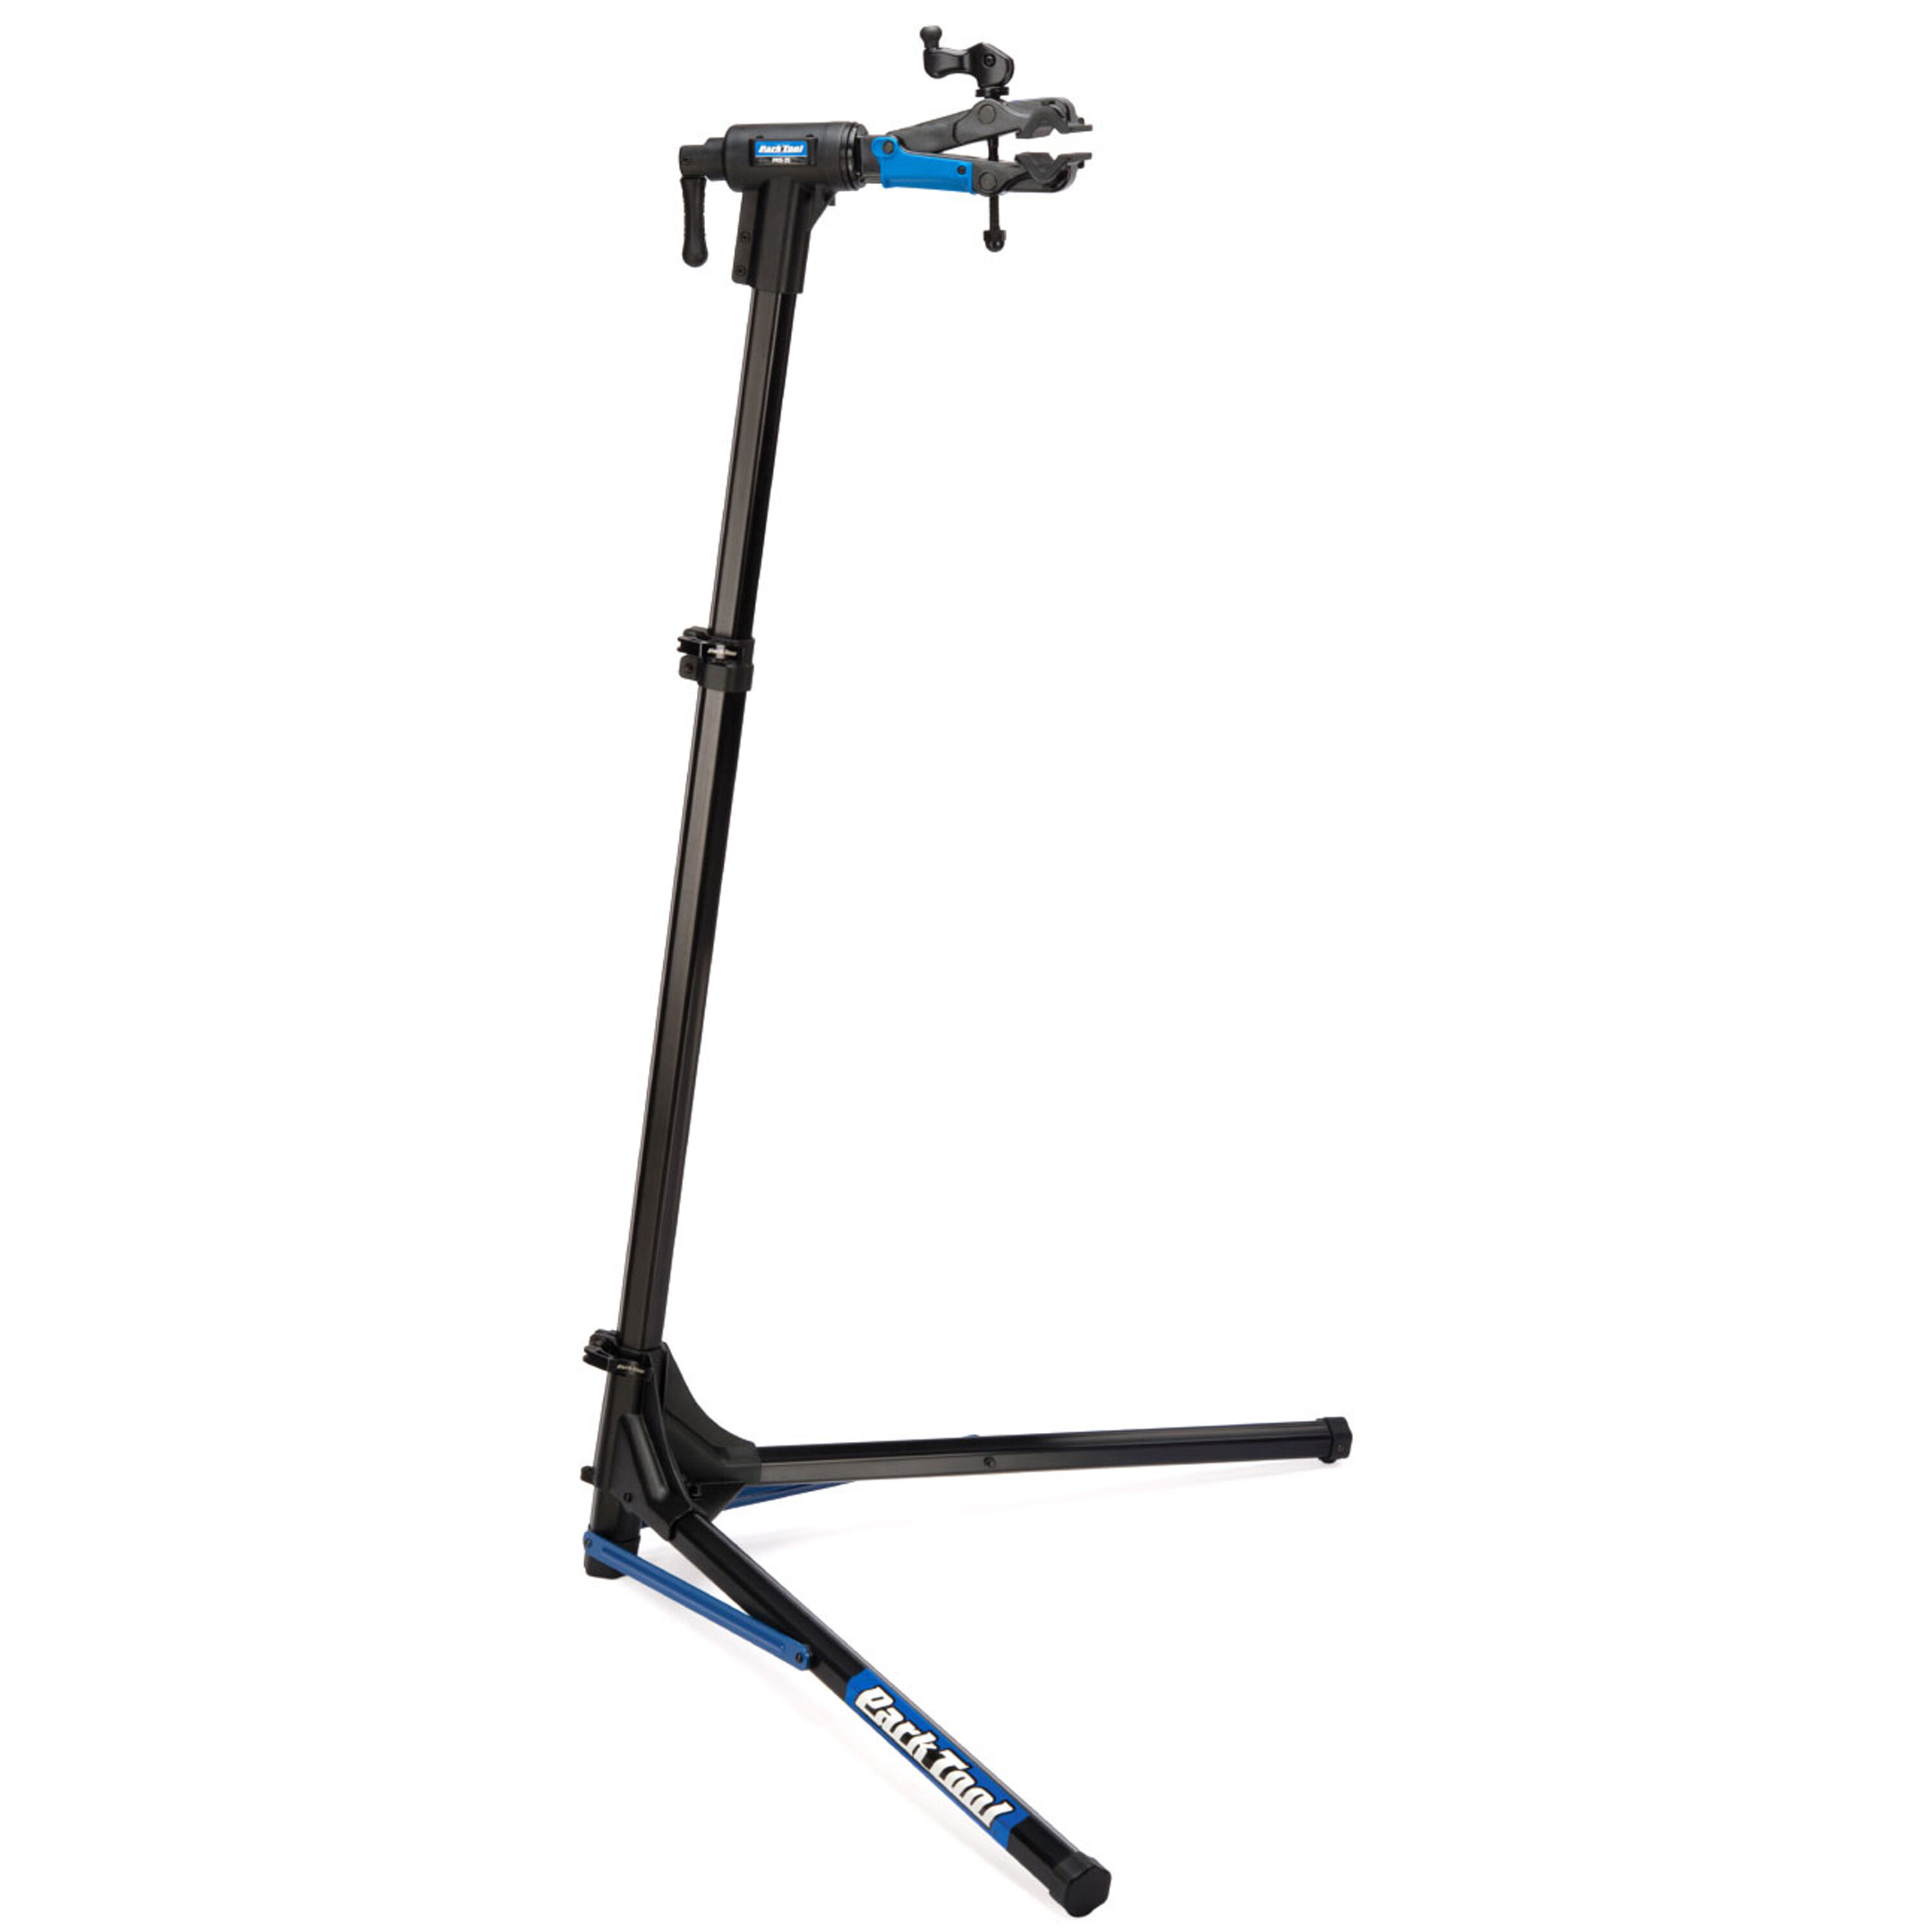 Park Tool Team Issue Maintenance Foldable Work Stand Prs